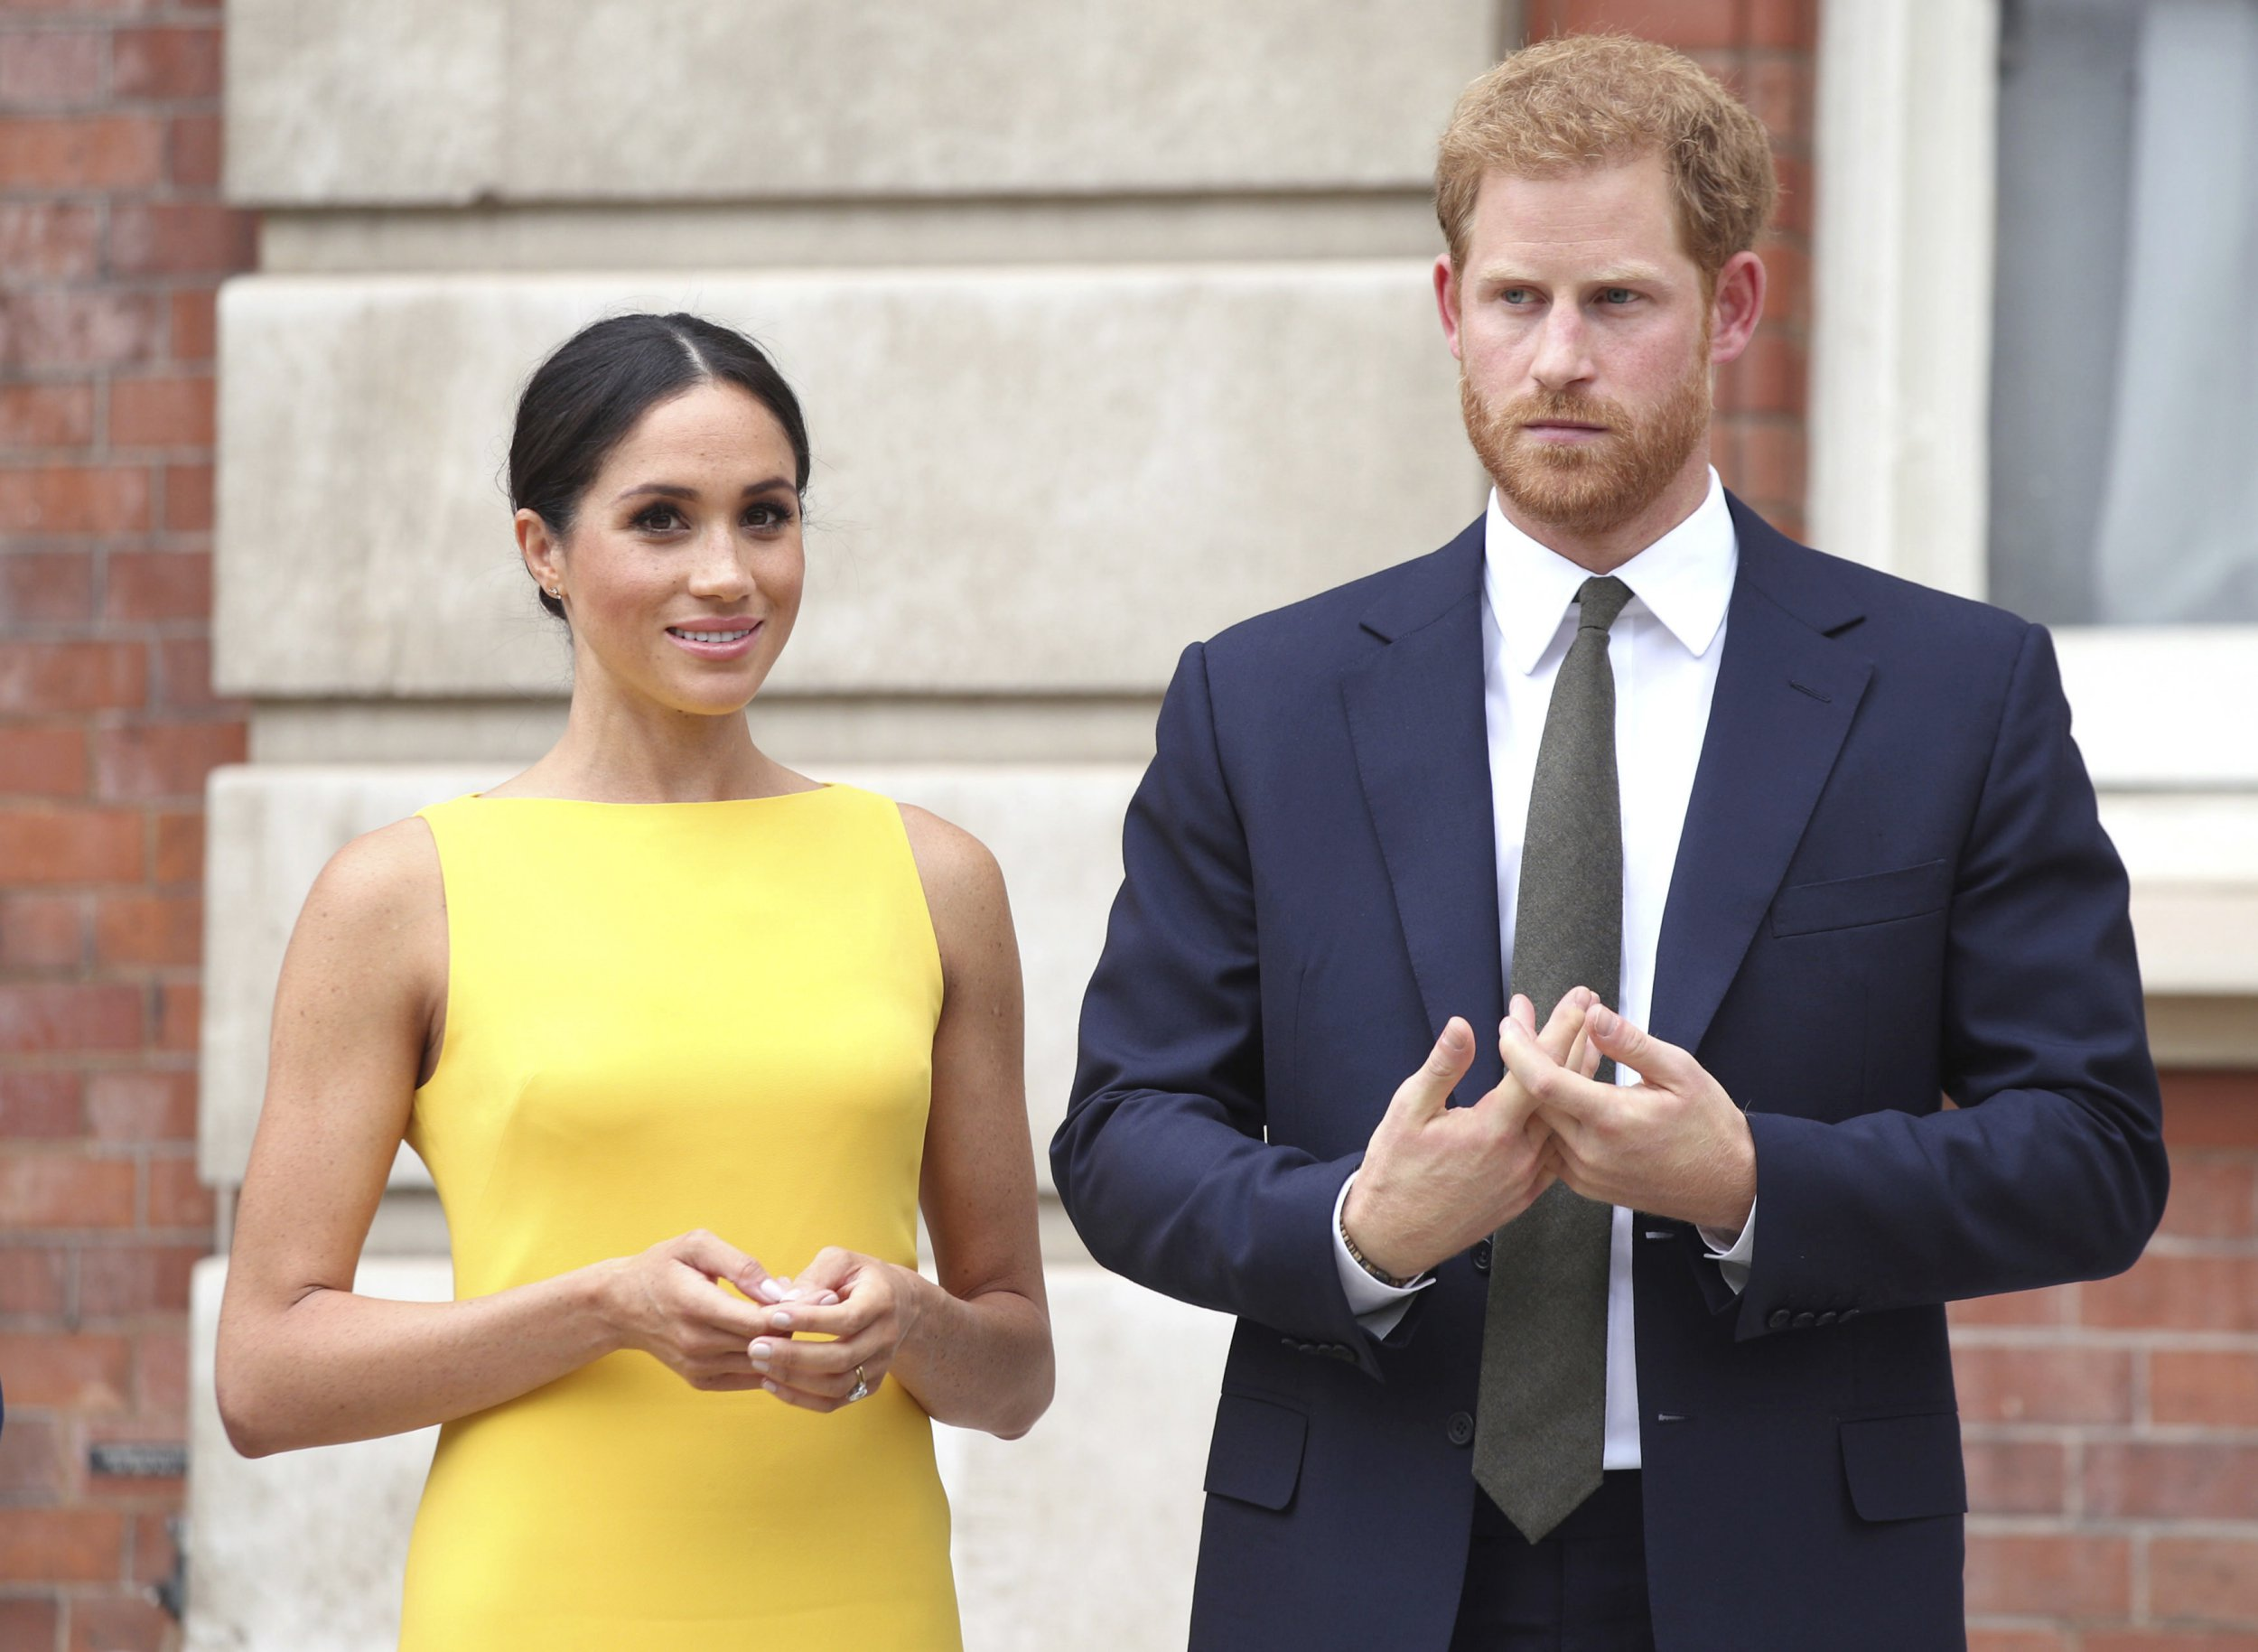 Britain's Prince Harry, the Duke of Sussex, right and Meghan, the Duchess of Sussex attend the 'Your Commonwealth' Youth Challenge reception where they will meet youngsters from across the Commonwealth, at Marlborough House in London, Thursday July 5, 2018. (Yui Mok/Pool Photo via AP)